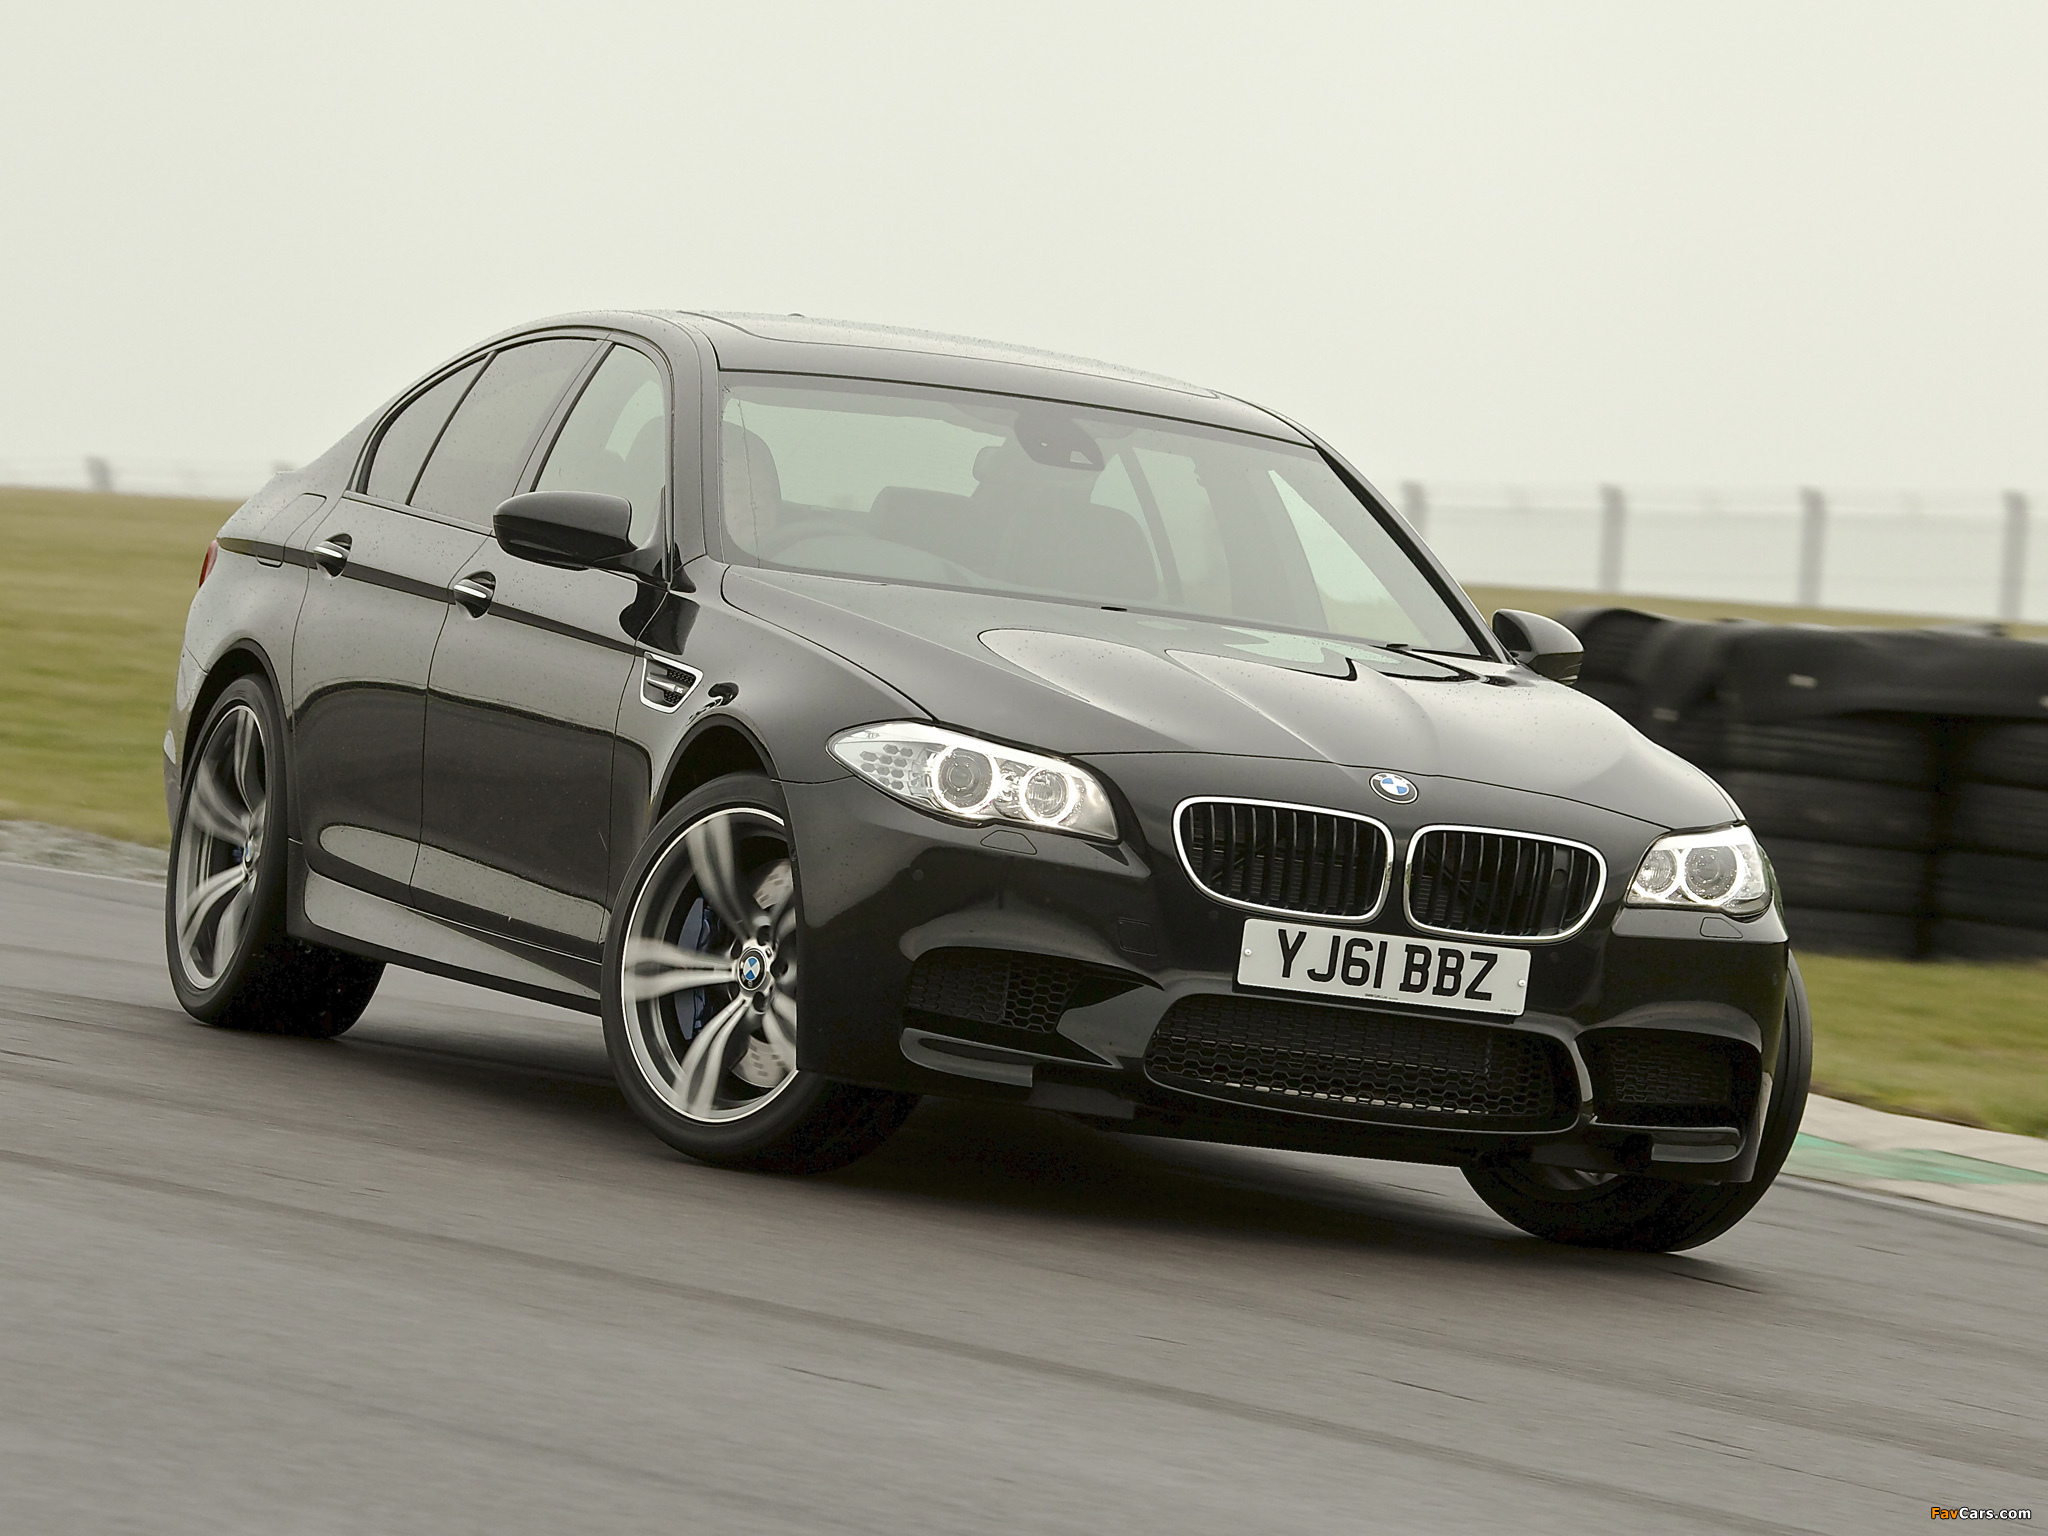 Related Pictures 2012 g power bmw m5 f10 dark cars wallpapers pictures 2048x1536